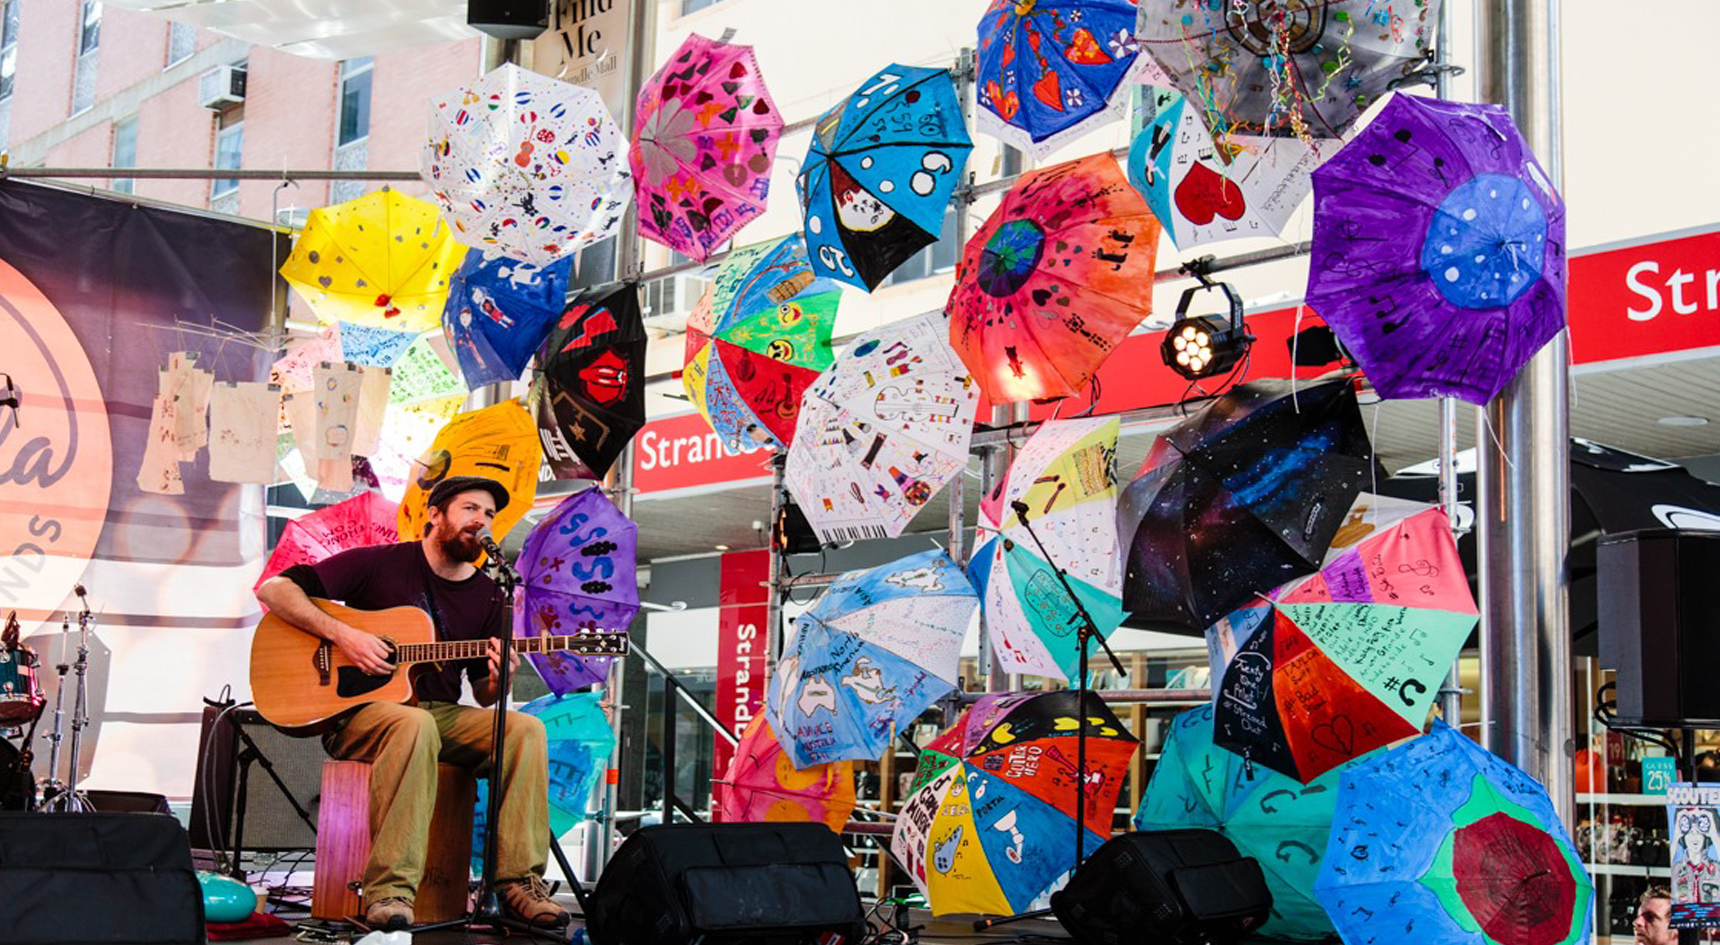 Musician playing guitar surrounded by colourful umbrellas.